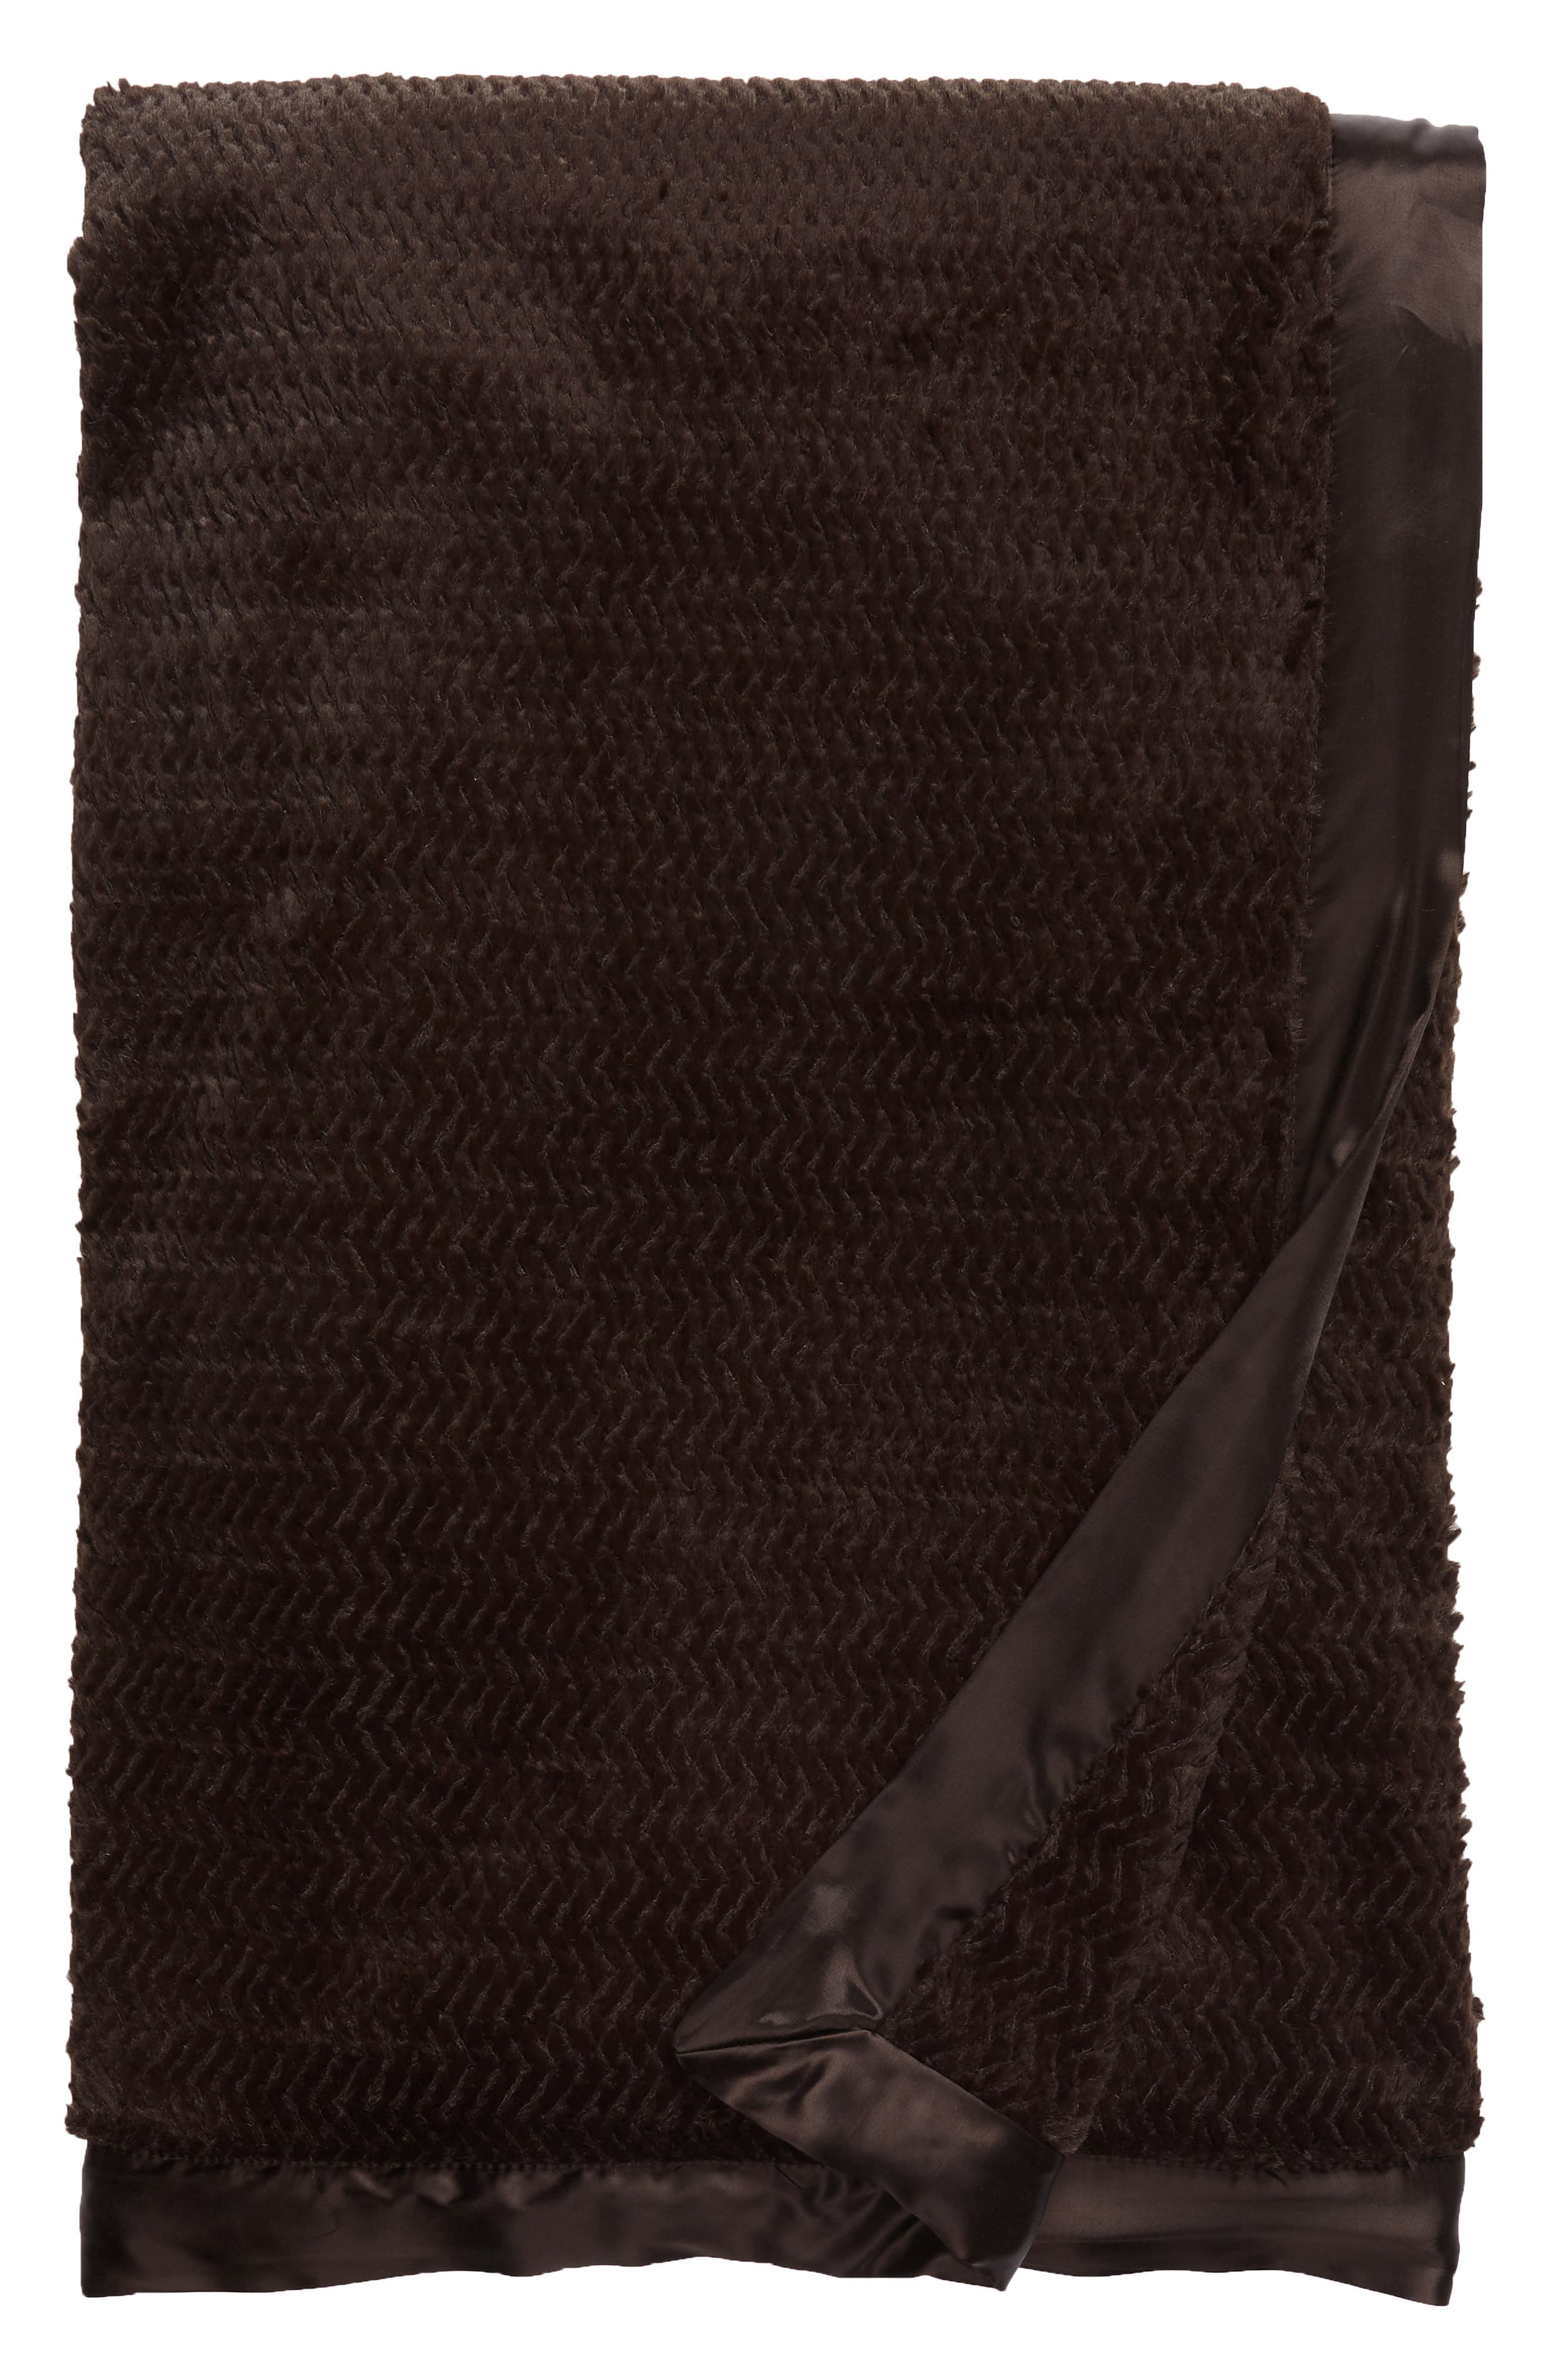 Luxe Twist Throw,                         Main,                         color, Chocolate